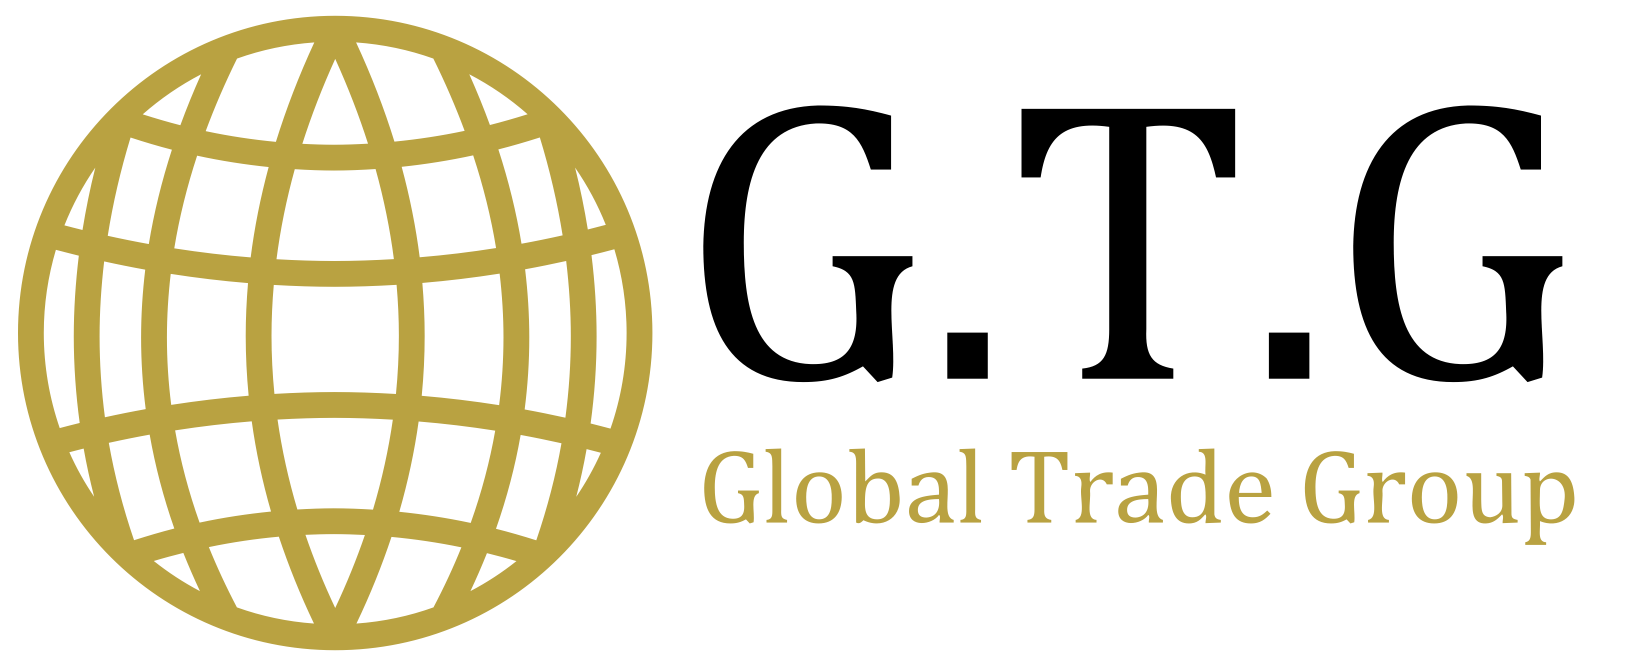 Global Trade Group